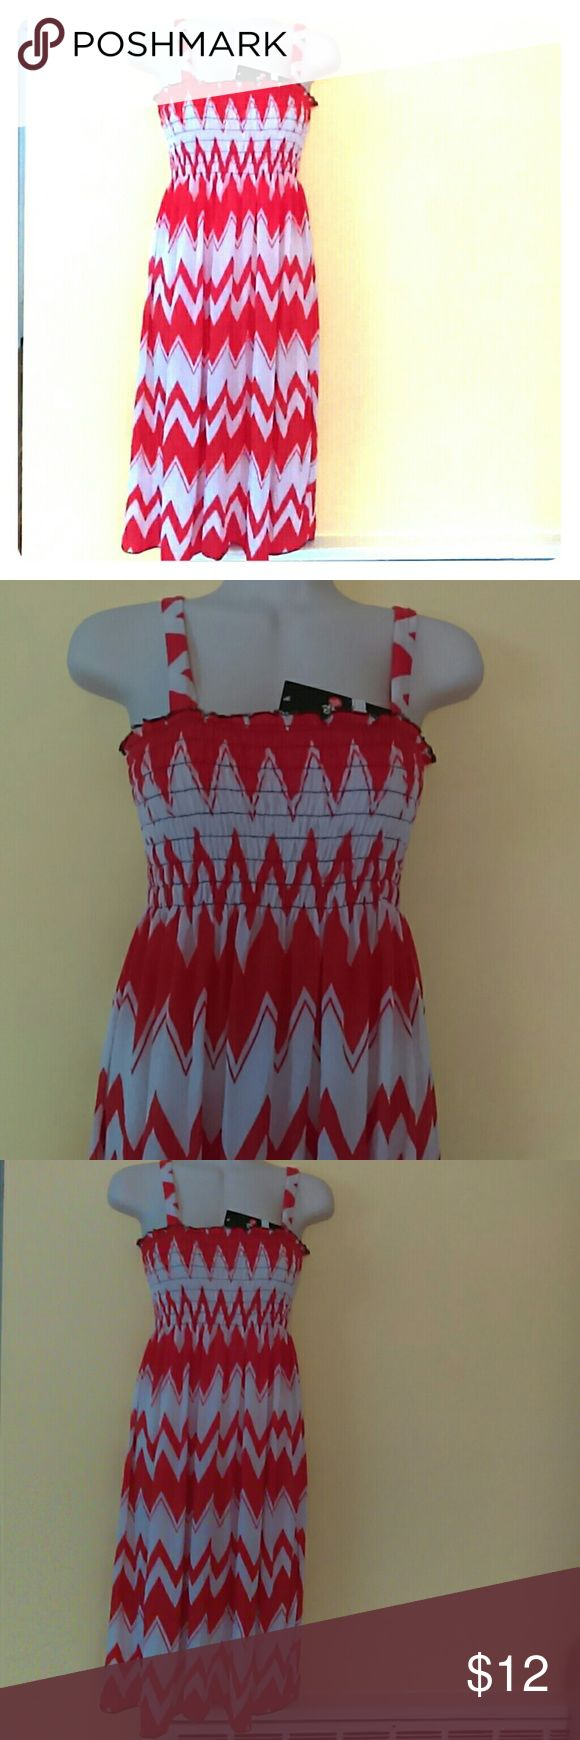 Shevron summer dress Red/white midi summer dress.  Measuring approx. 39 inches from shoulder straps to bottom.  Tag says XL but L is suitable Dresses Midi